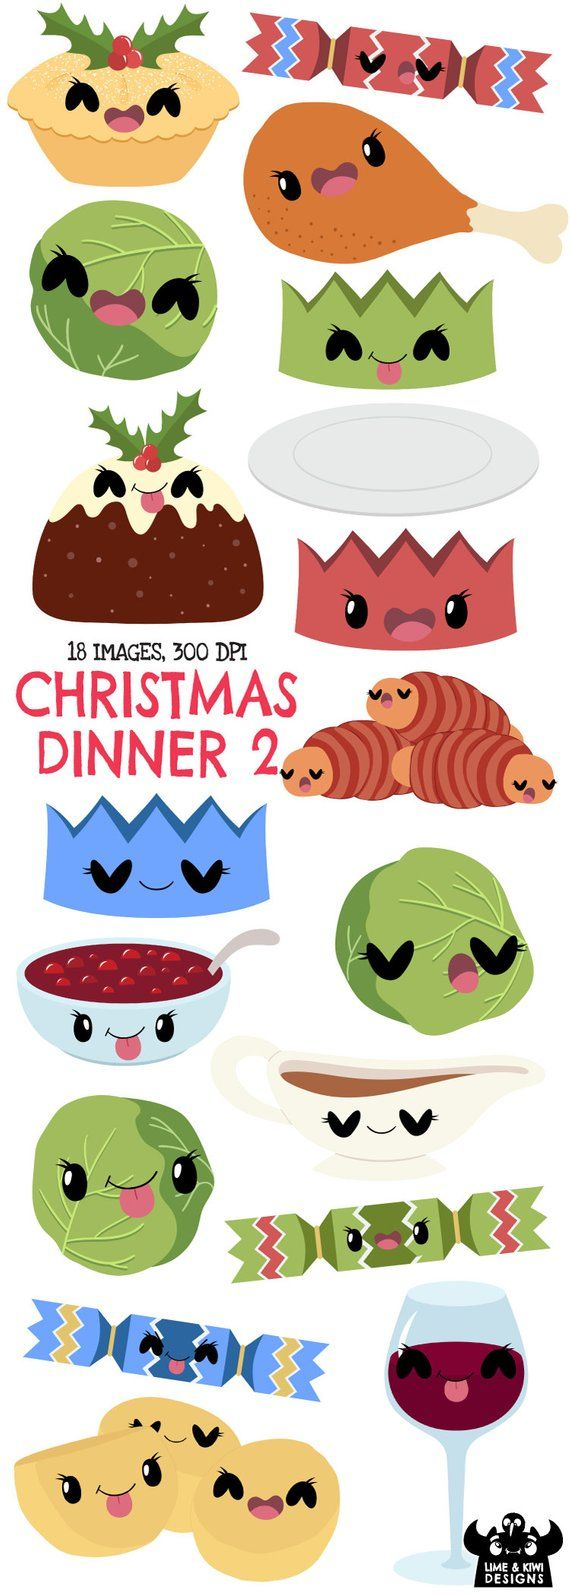 Christmas Dinner Clipart.Kawaii Christmas Dinner 2 Clipart Instant Download Vector